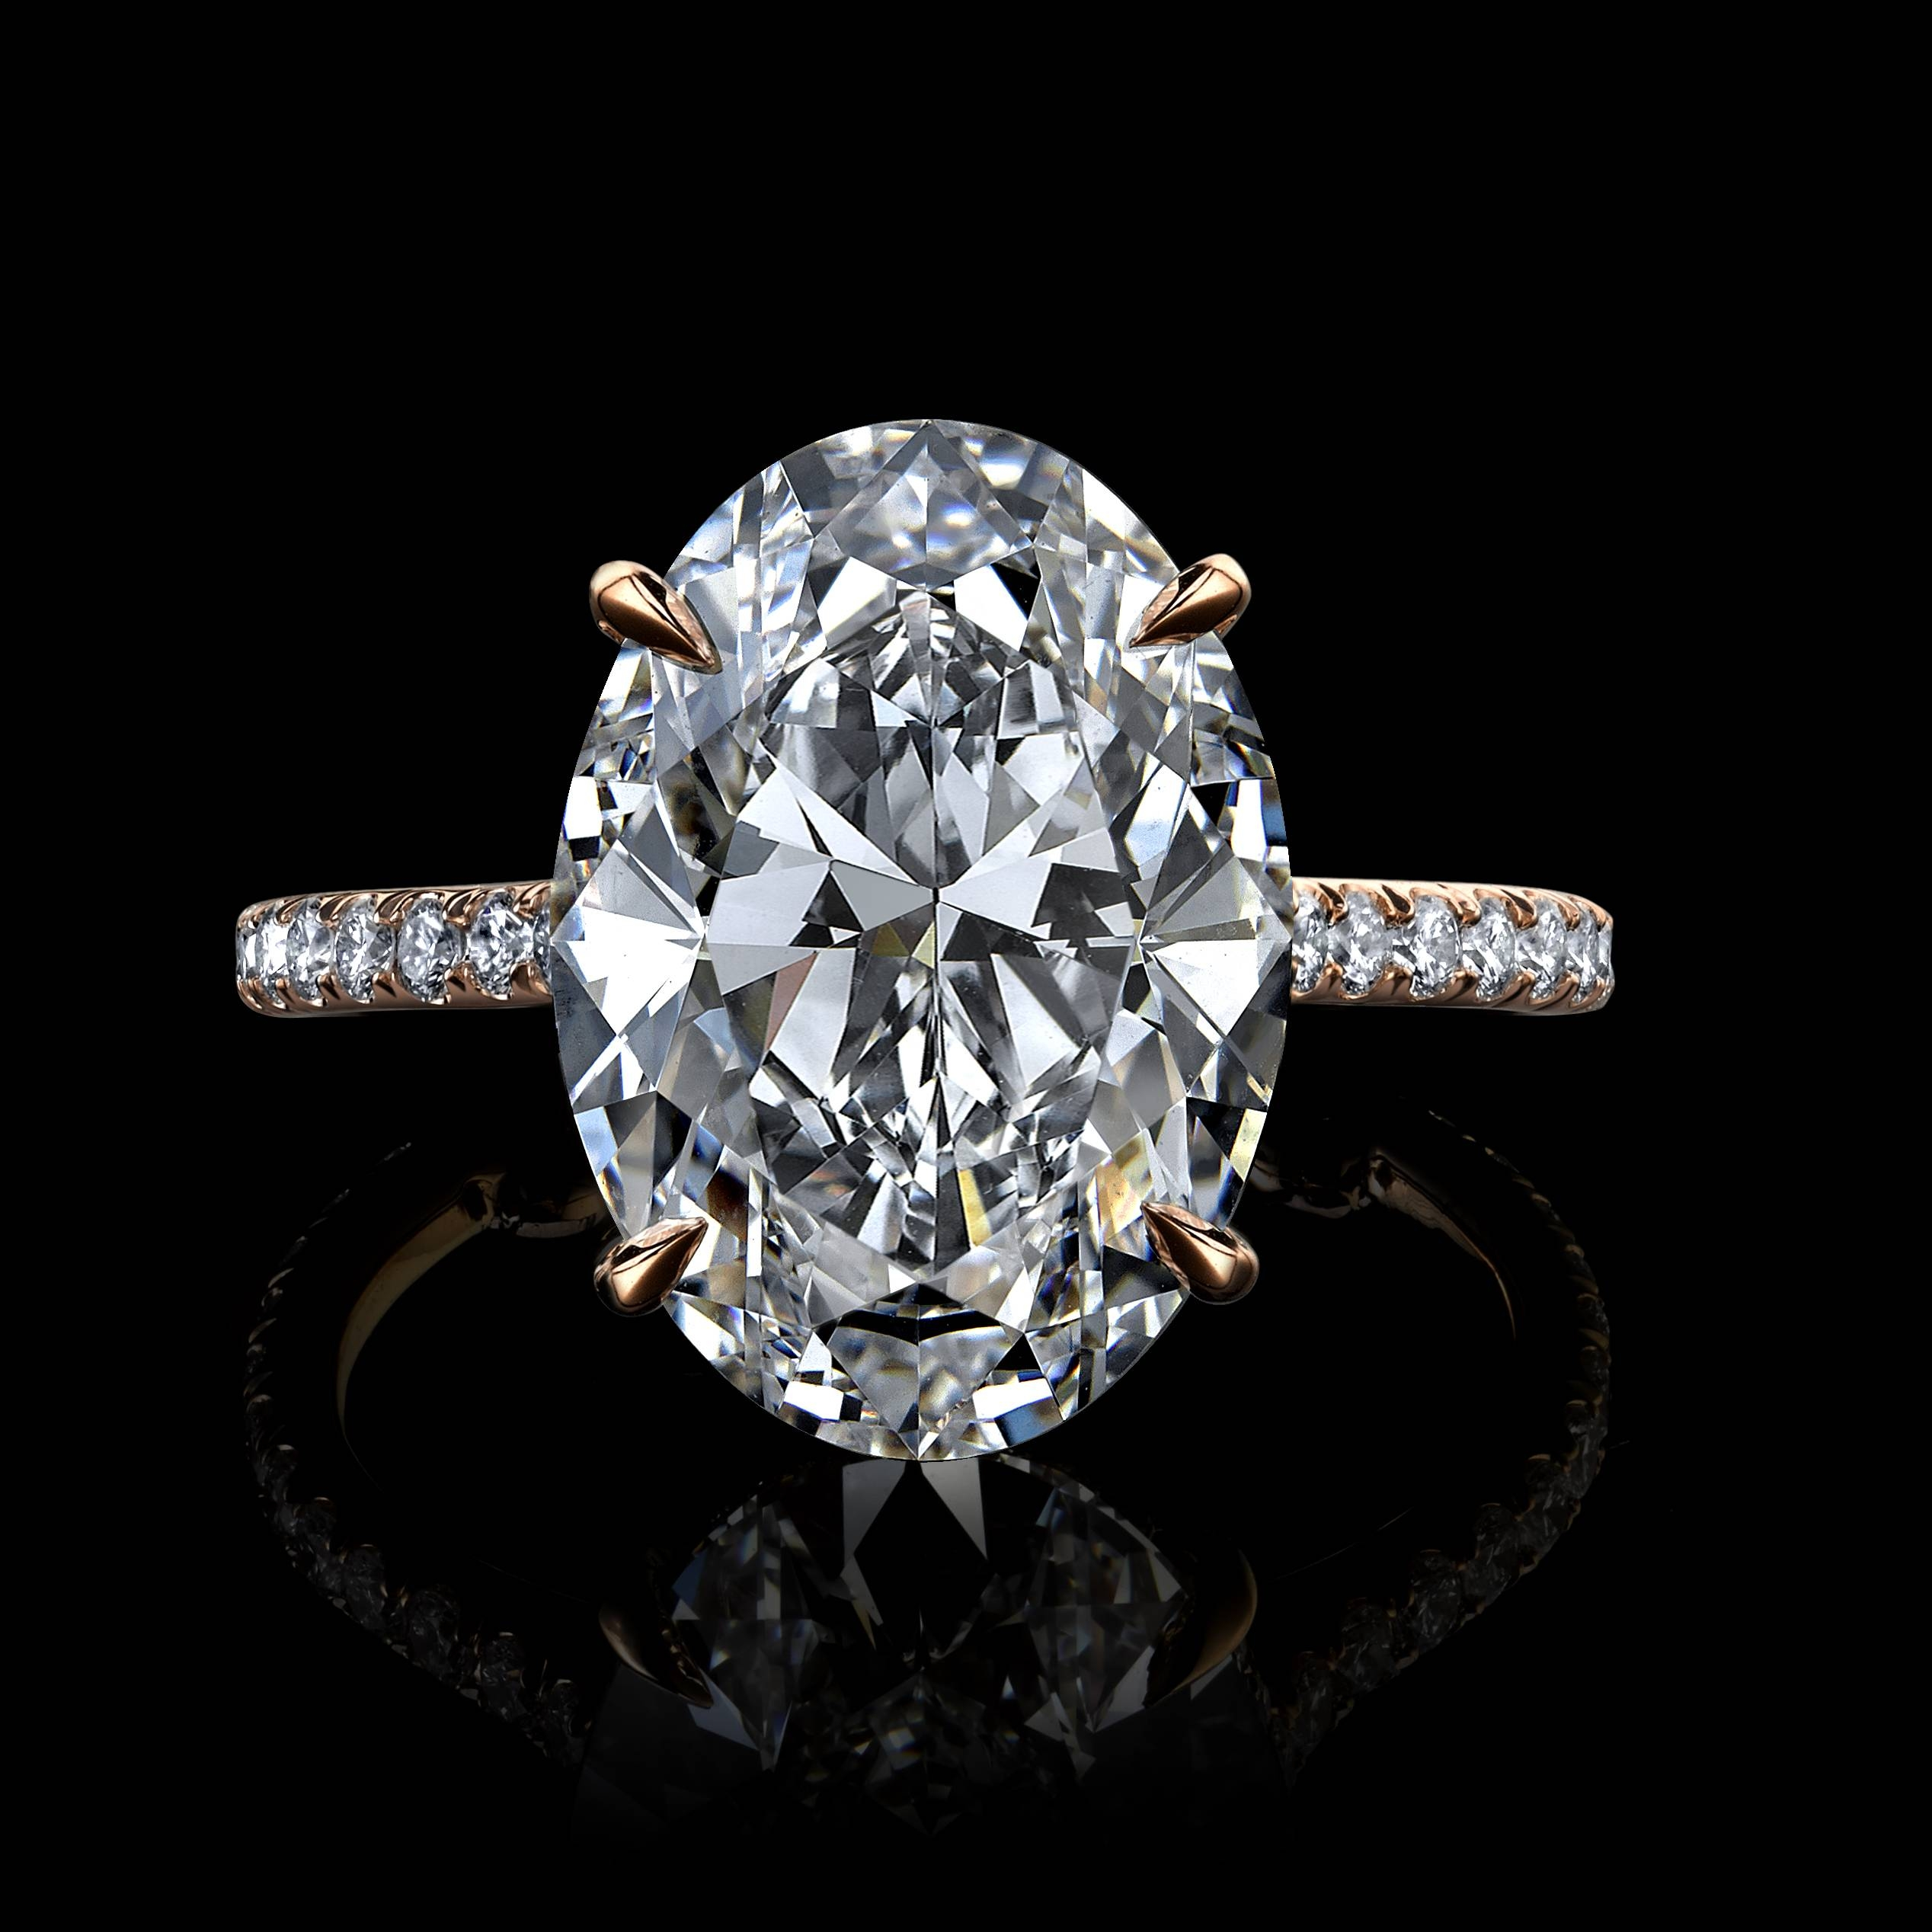 diamond platinum row engagement mdc diamonds tcw in micro from cfm engagementringsre rings three pave ring lotus nyc